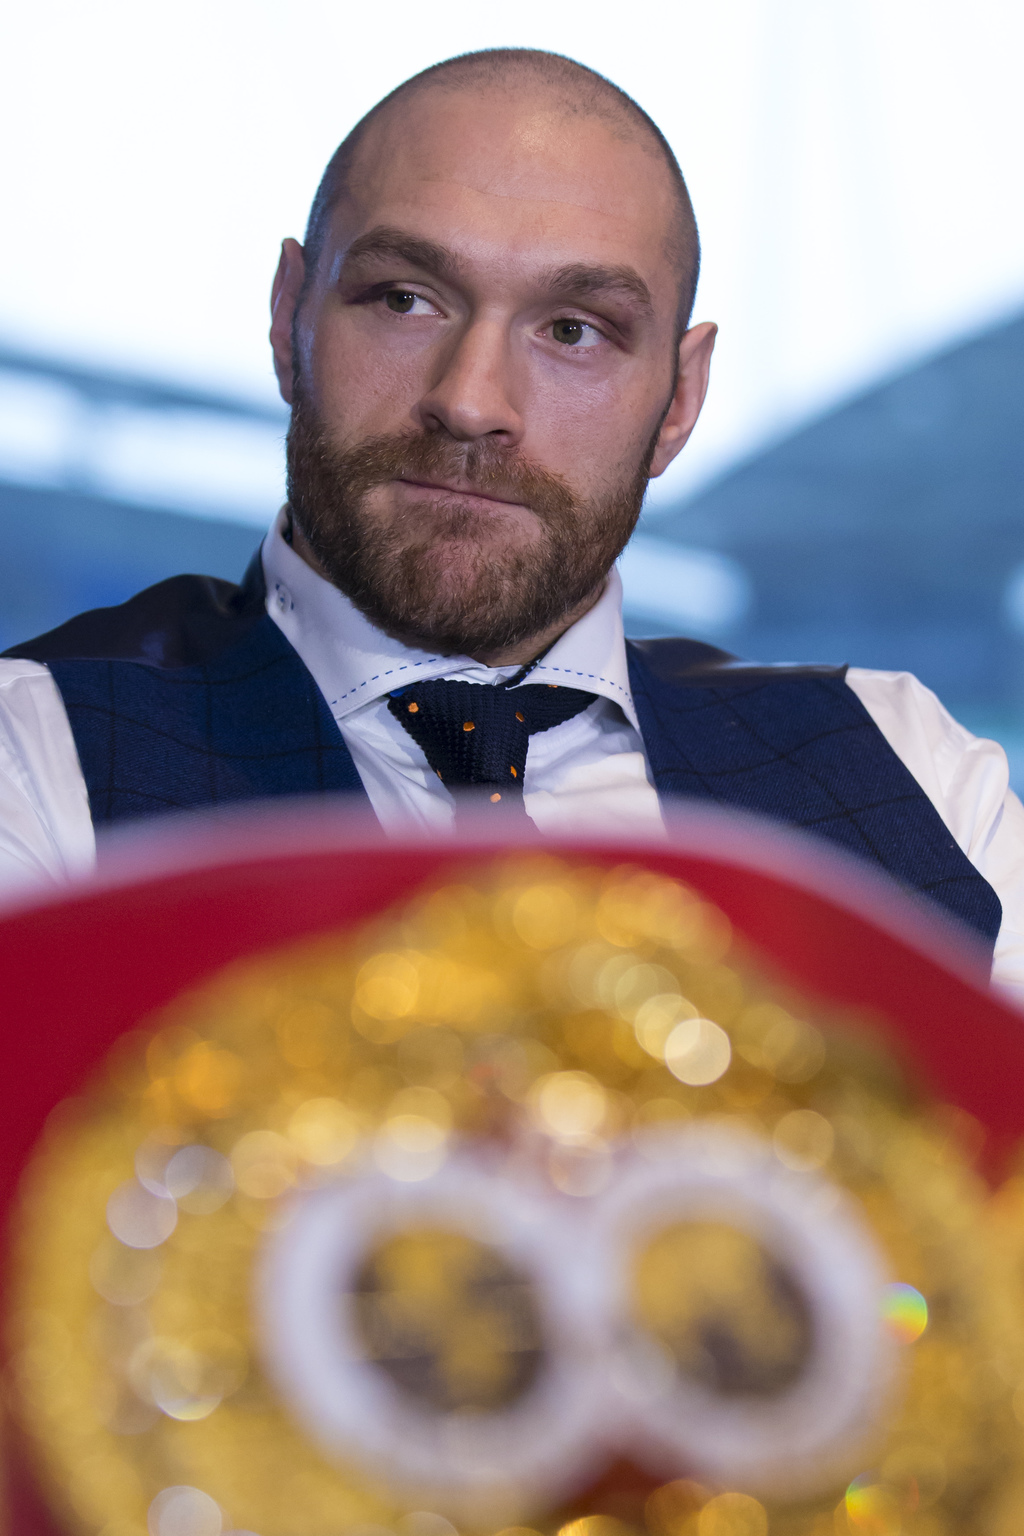 FILE - In this file photo dated Monday, Nov. 30, 2015, newly crowned heavyweight world boxing champion Tyson Fury hosts a media confere...